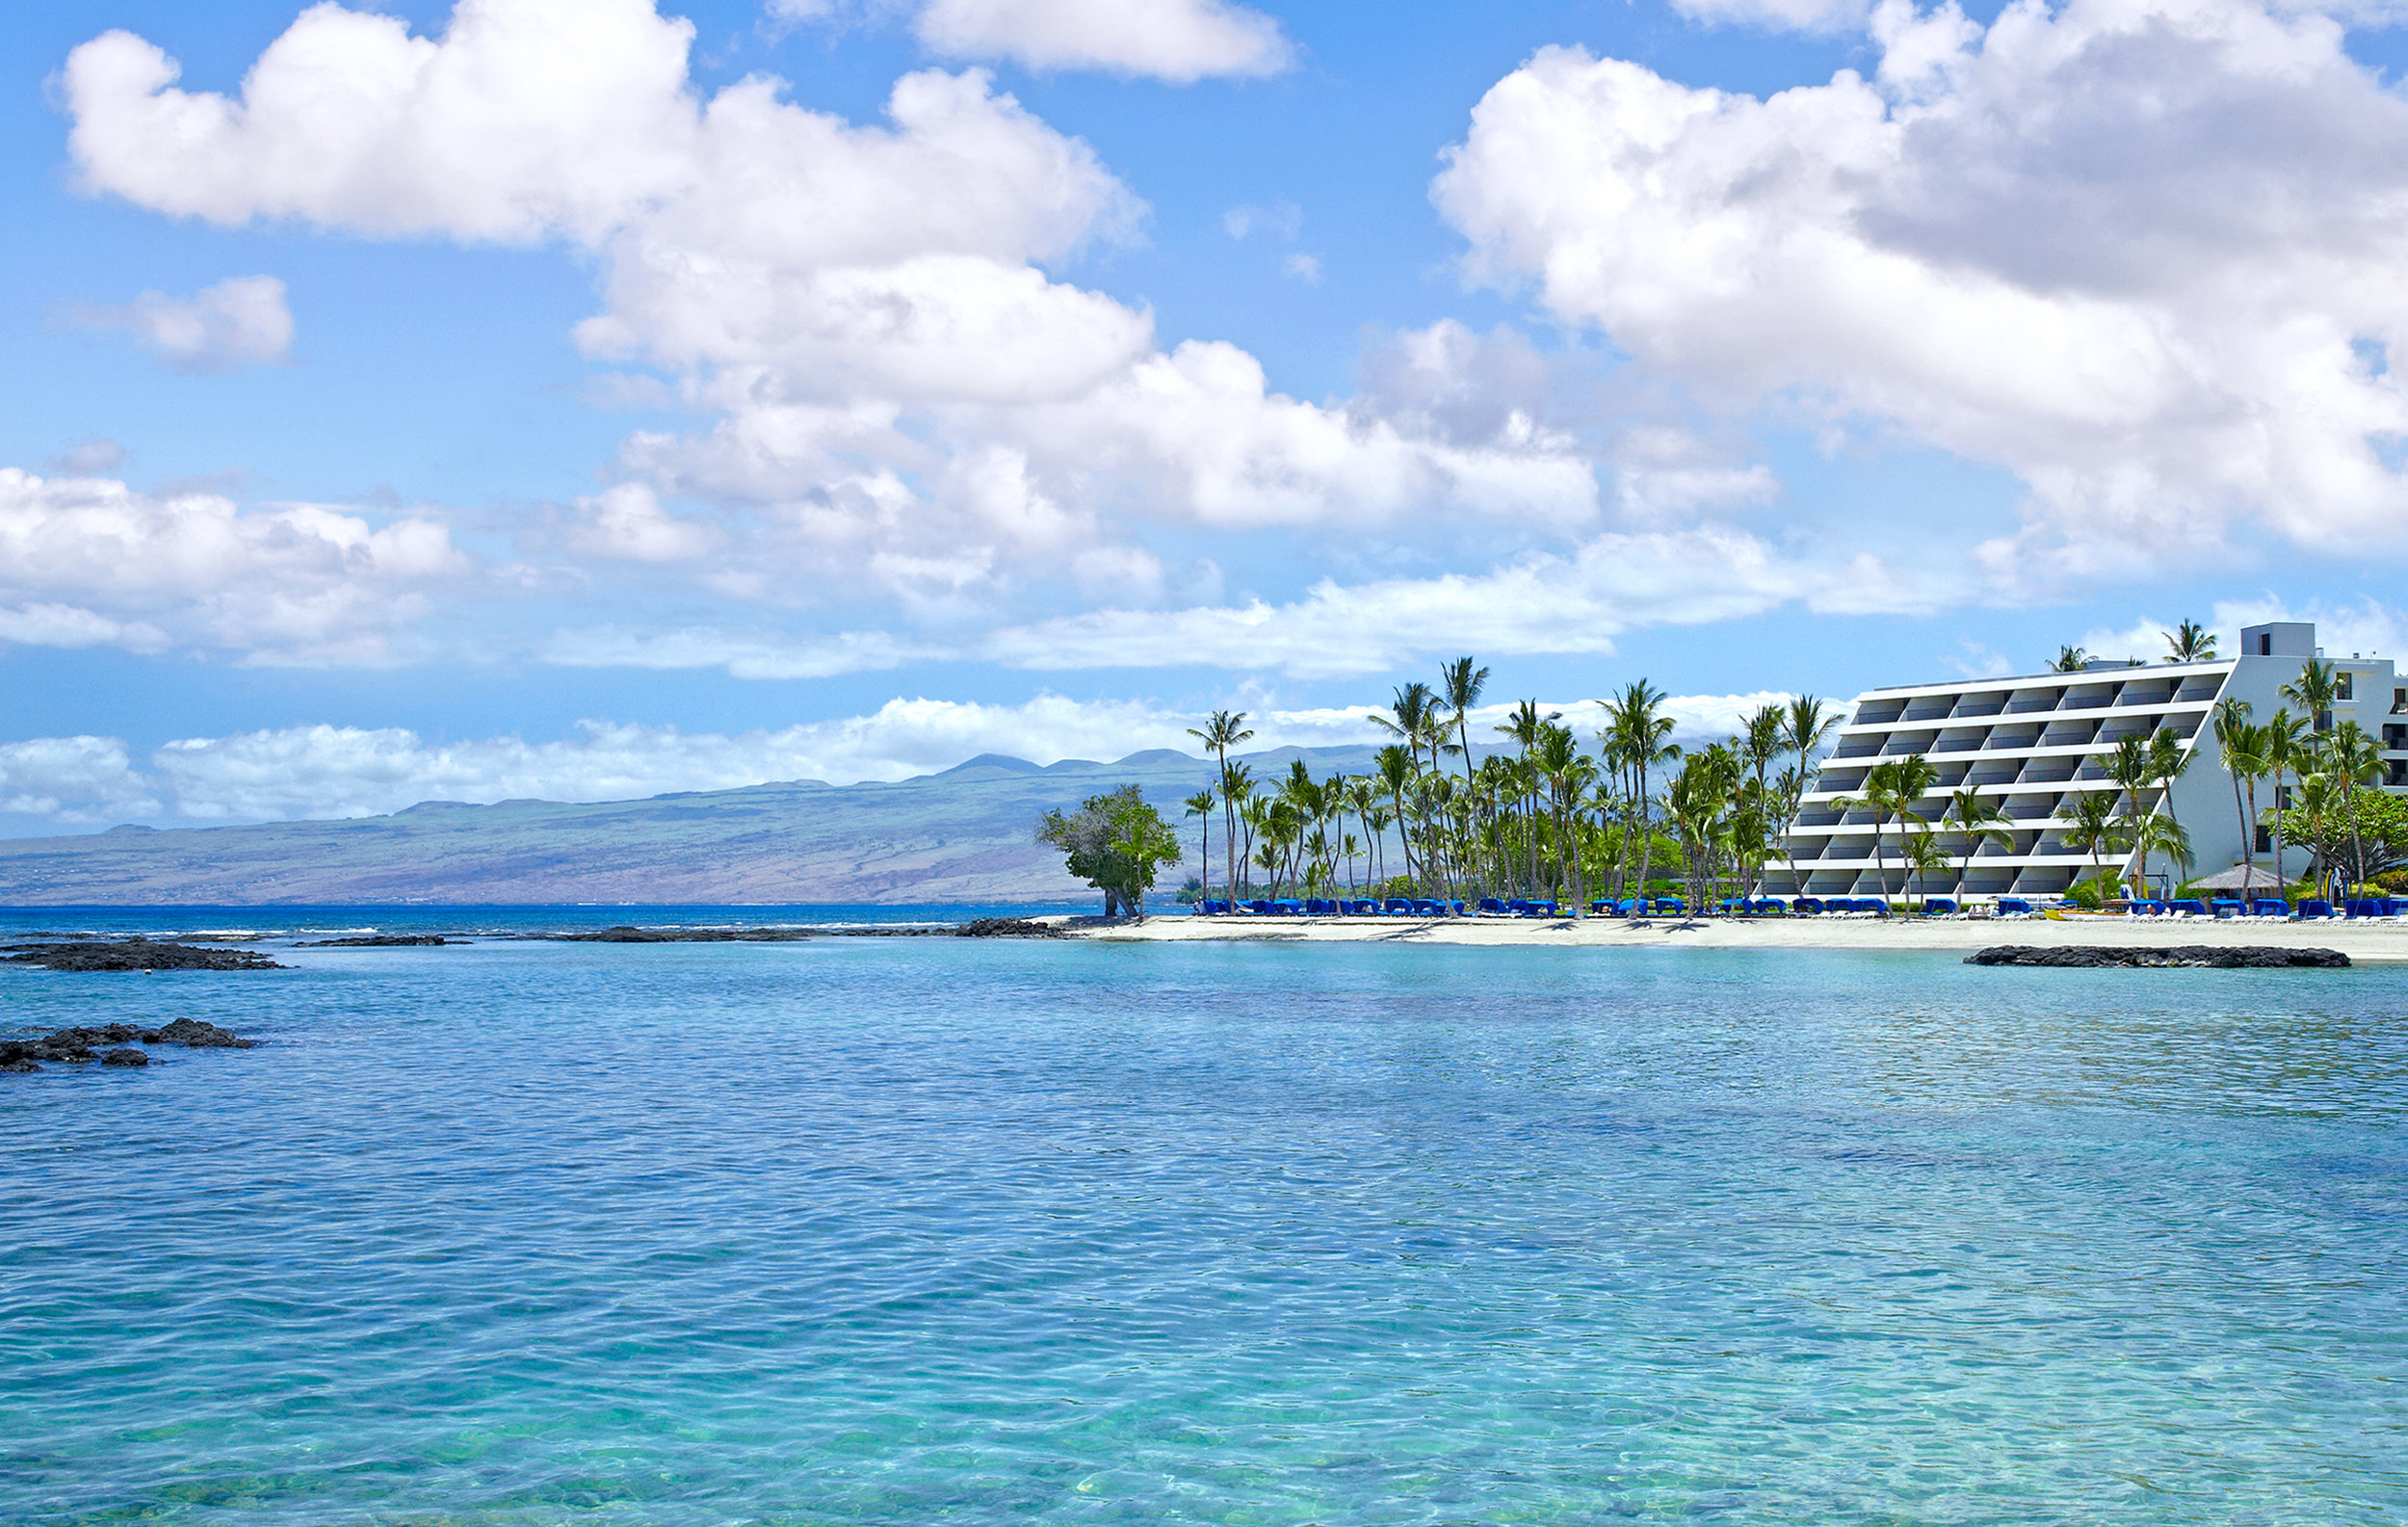 A feel-good stay: Mauna Lani Bay Hotel & Bungalows was the first resort in Hawaii to implement commercial-scale solar energy with a photovoltaic system so major, its panels span three acres.